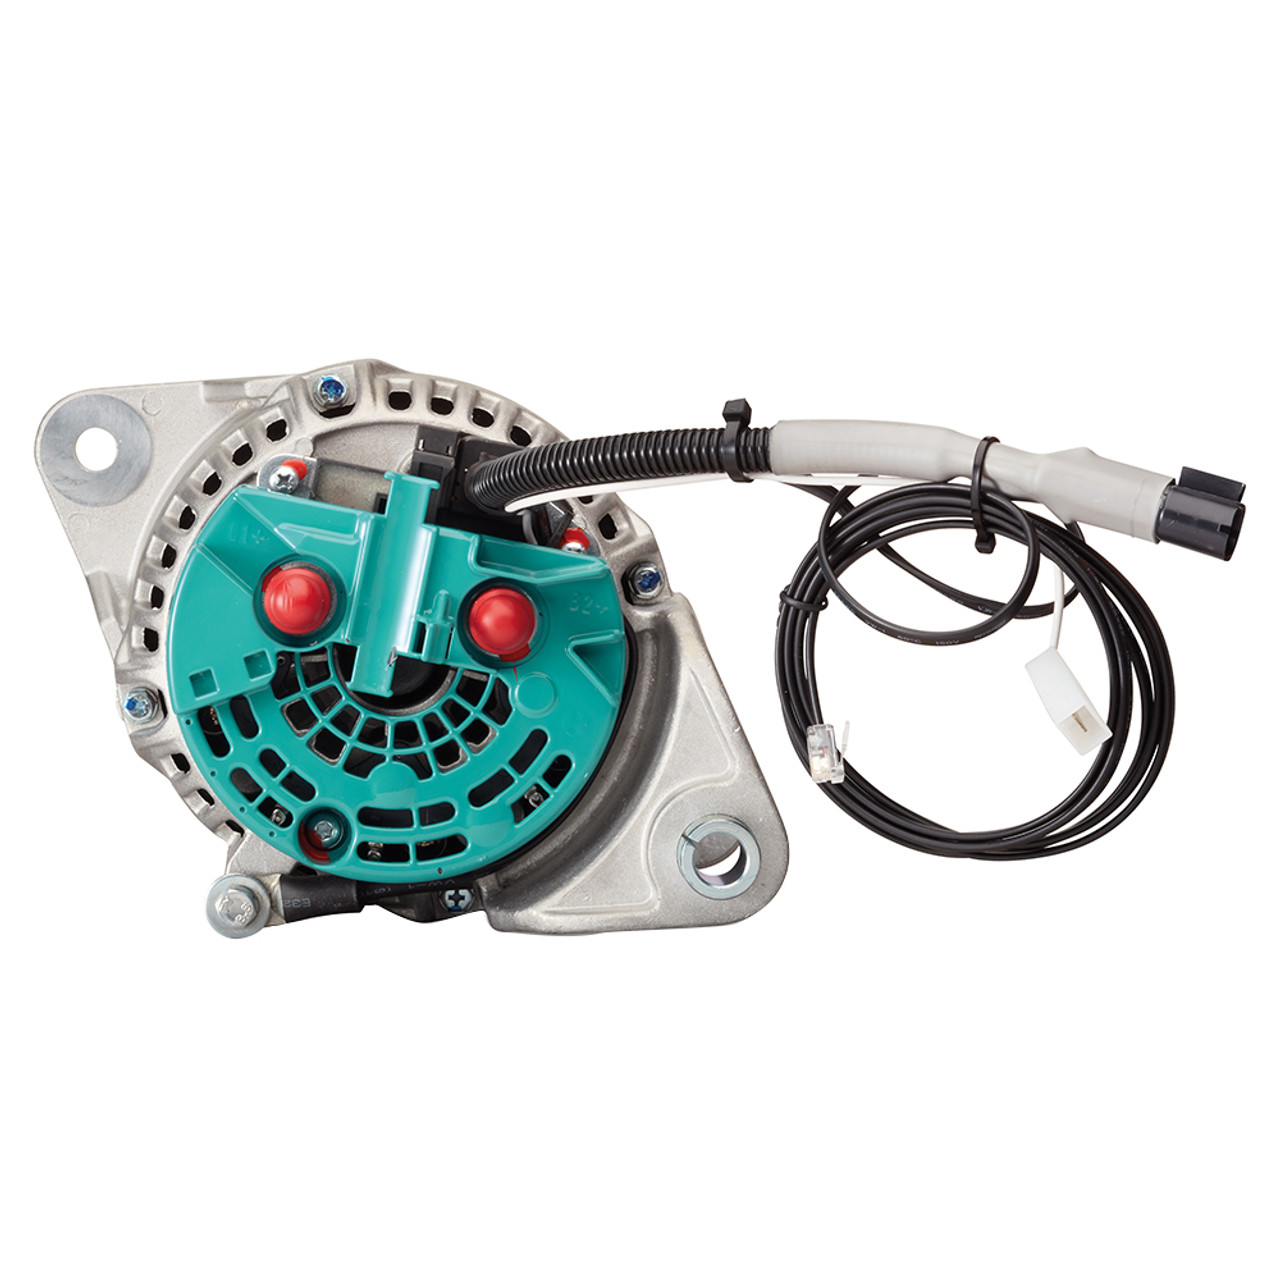 mastervolt alpha compact alternator 28 80 volvo penta with pulley 8 ribs  [ 1280 x 1280 Pixel ]